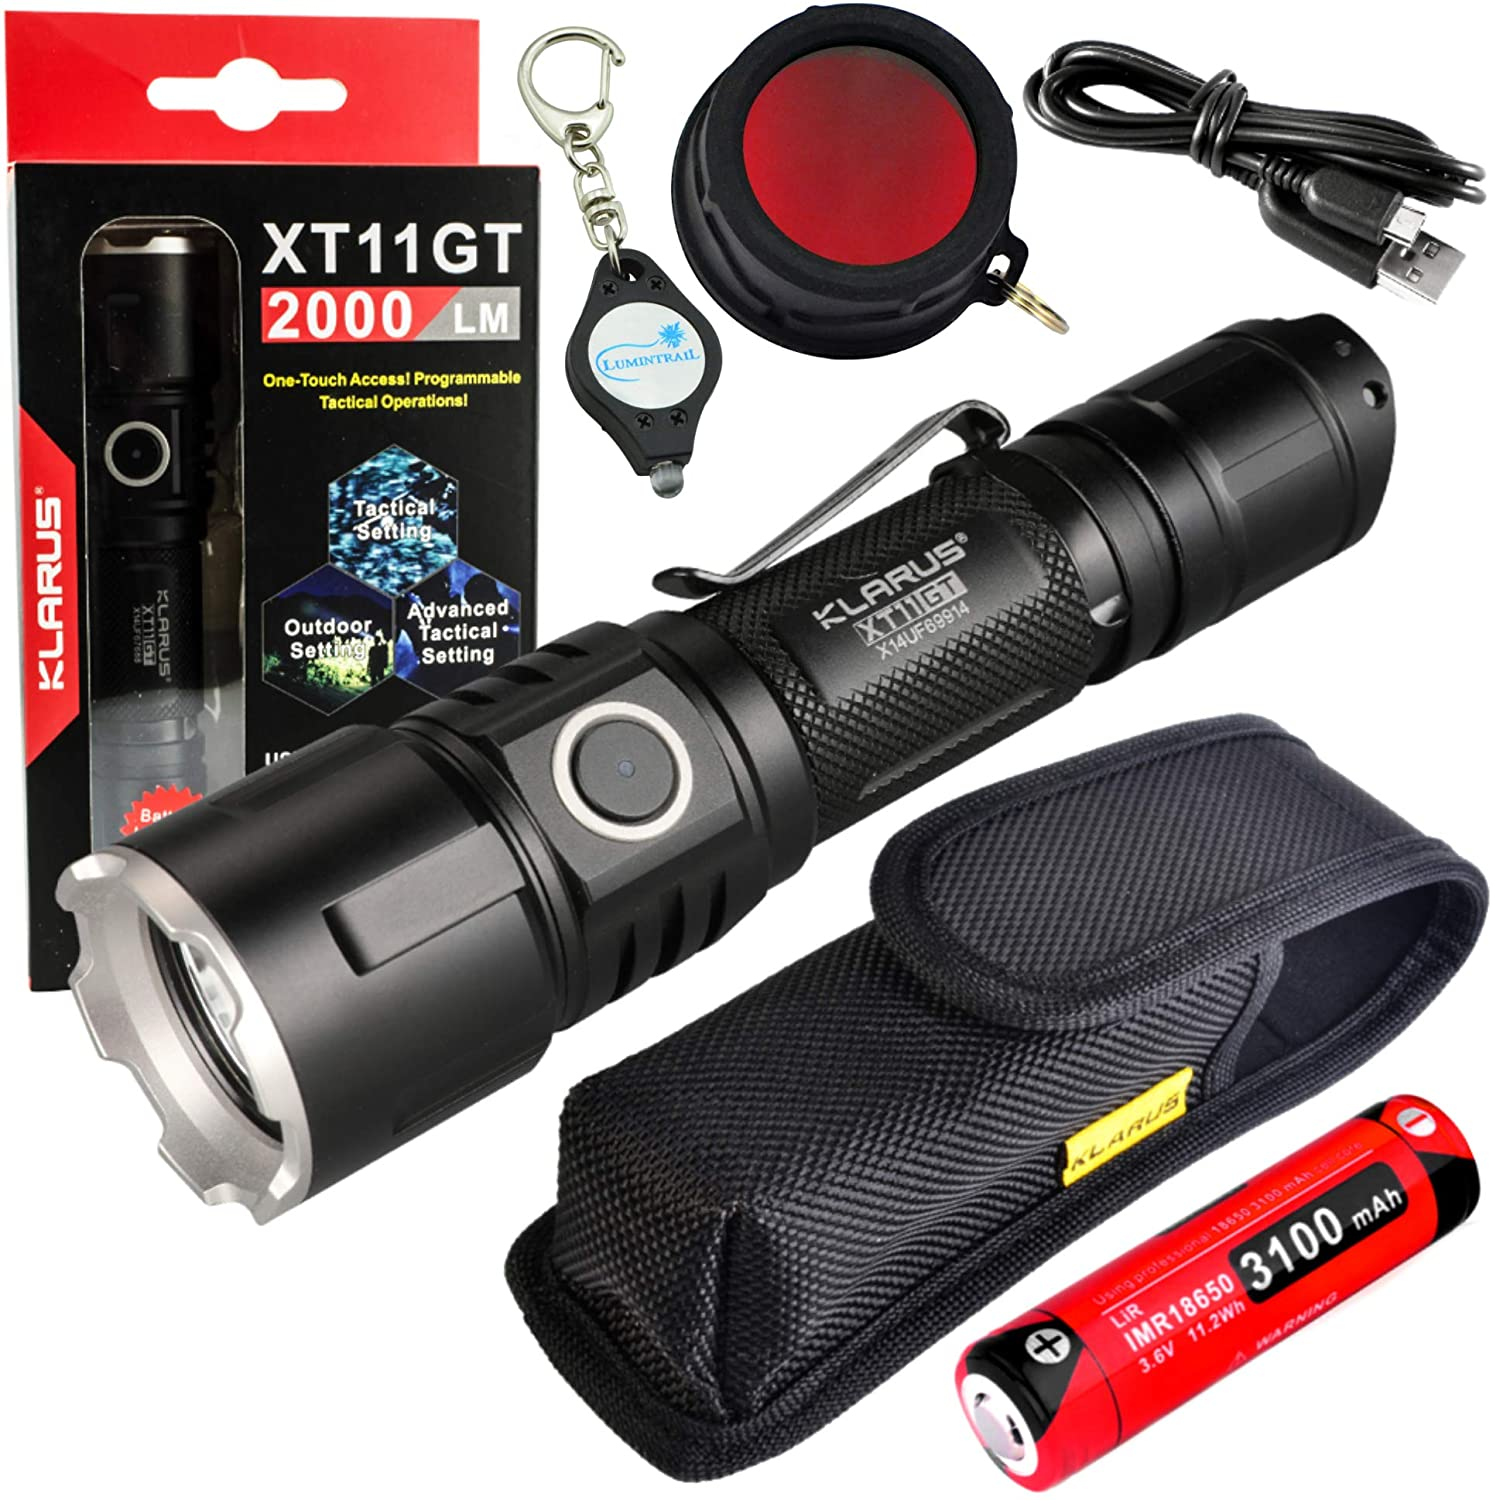 klarus New XT11GT Tactical Rechargeable Flashlight CREE XHP35 HD E4 LED 2000 Lumens Bundle with a FT11 RED Hunting Filter and a Lumintrail Keychain Light